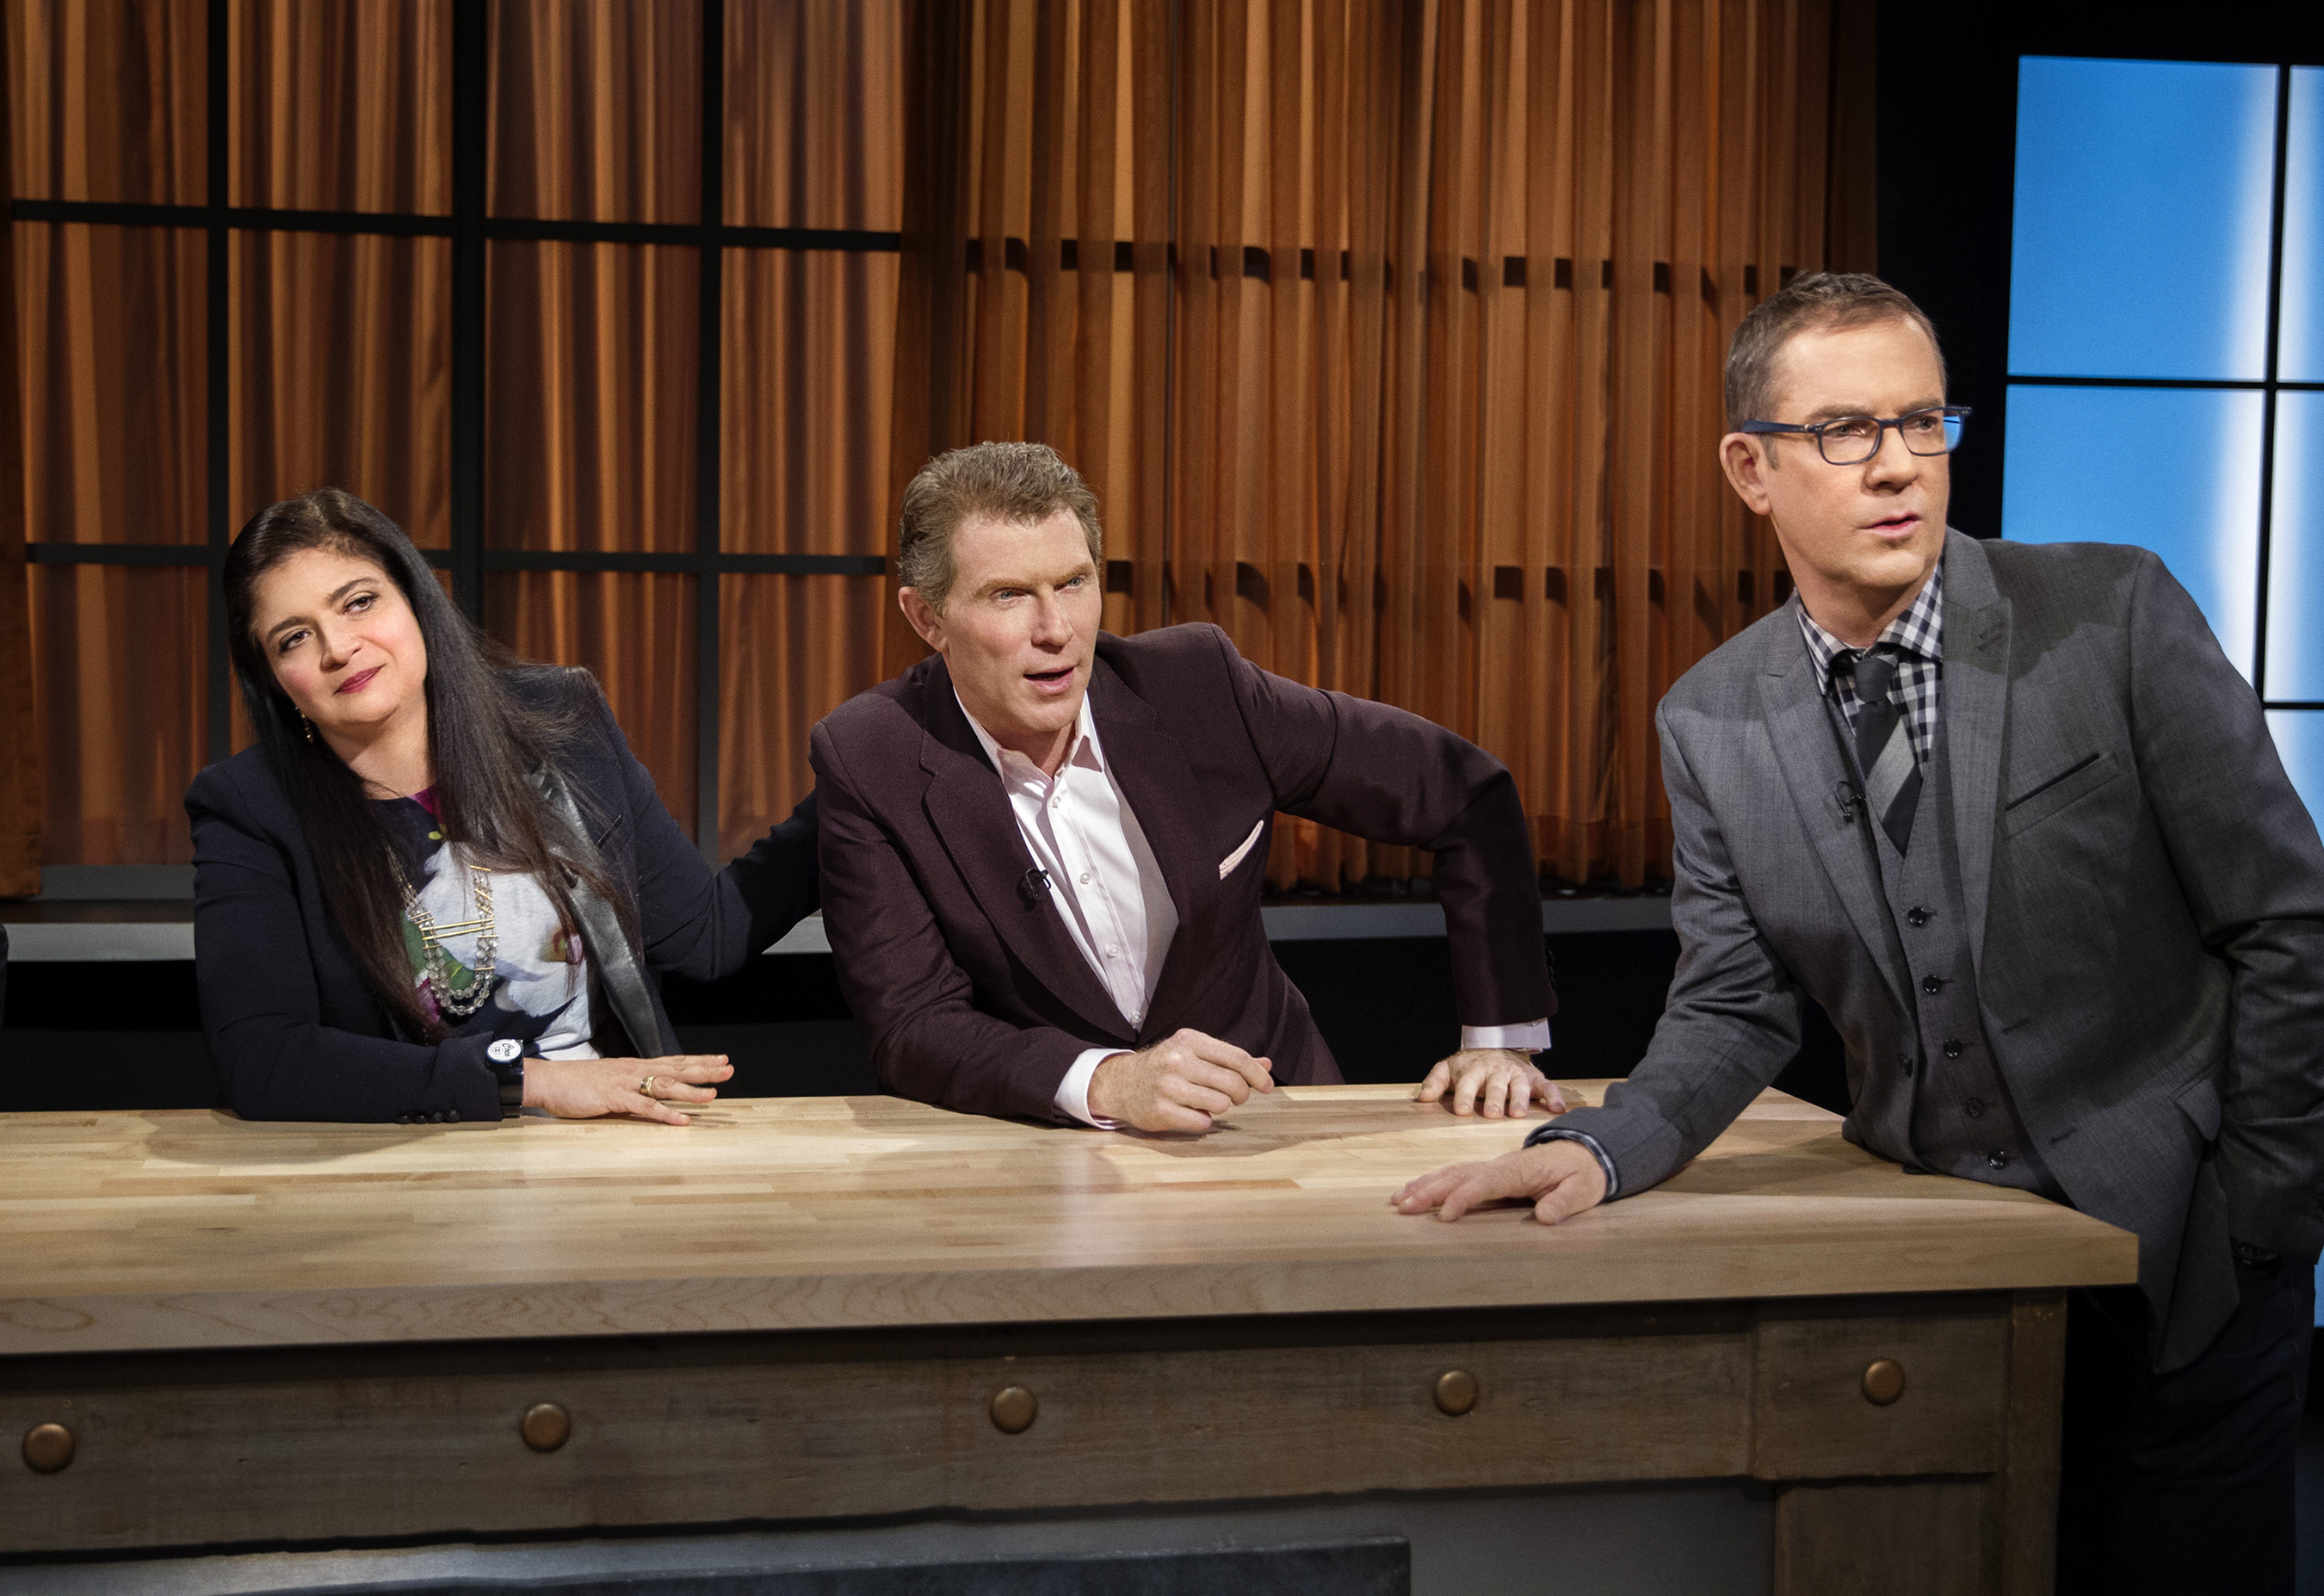 Judges Alex Guarnaschelli and Bobby Flay and host Ted Allen watch the competitors on Food Network's Chopped: Beat Bobby Flay